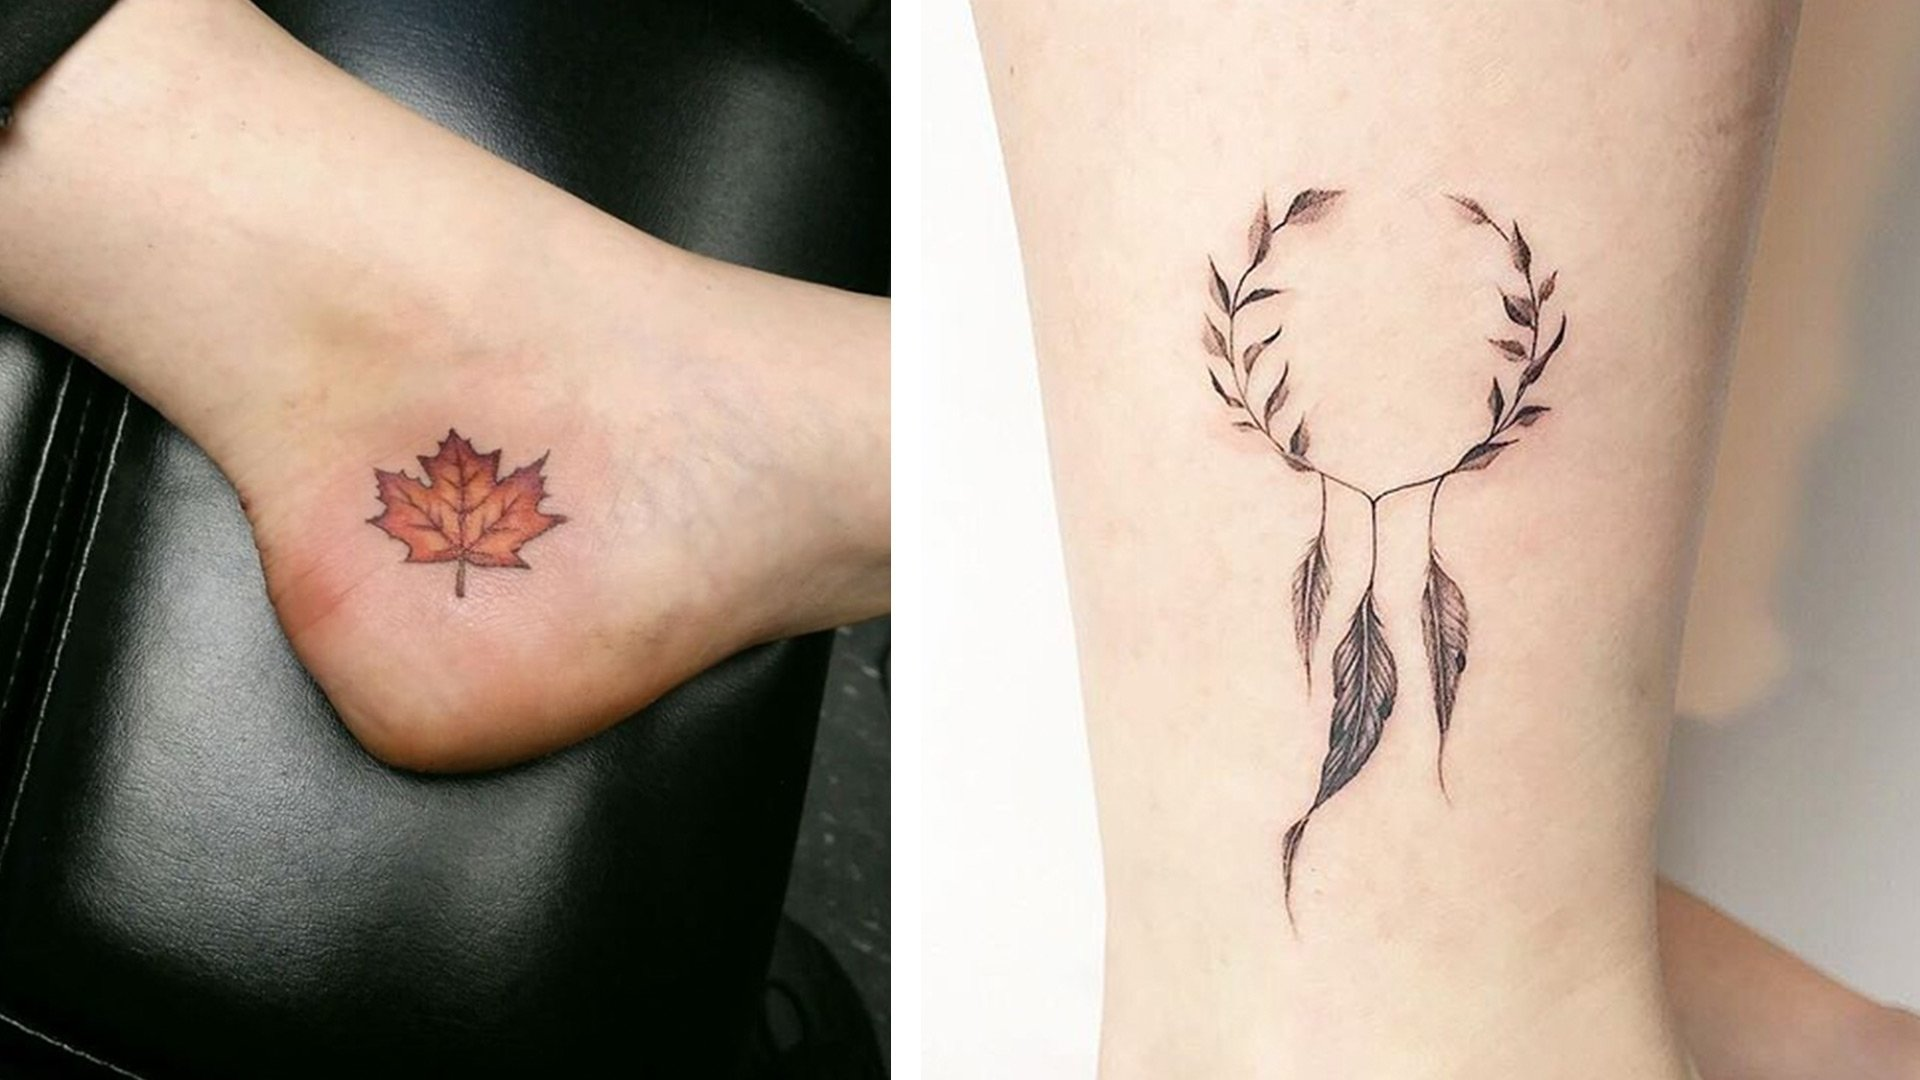 10 Spectacular Best Tattoo Ideas For Women 30 best tattoo designs for men and women that minimalists will love 2020